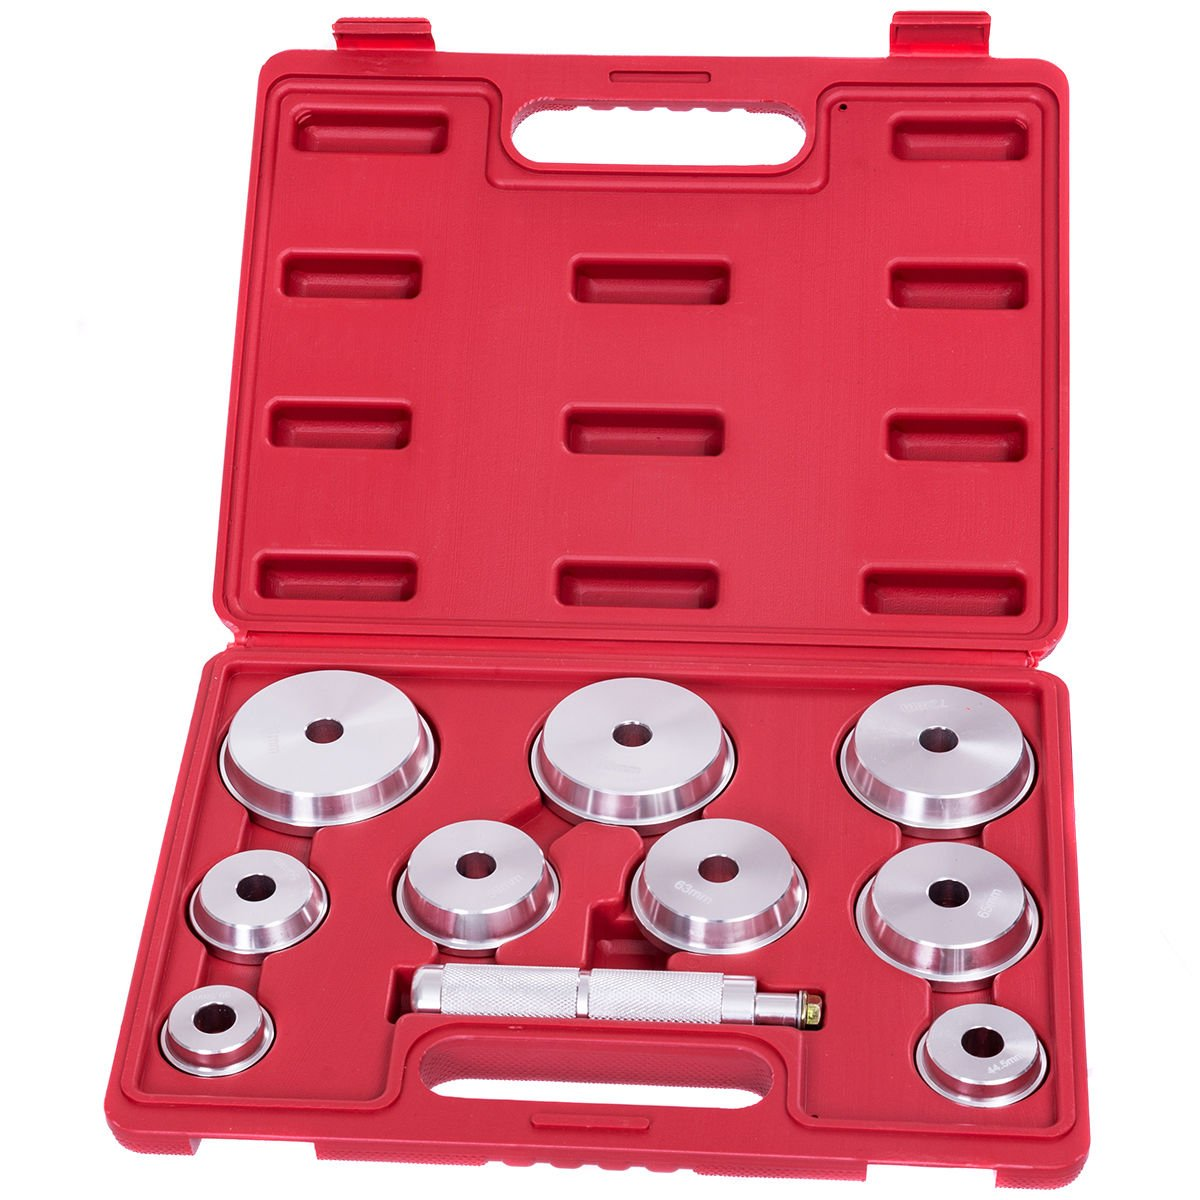 Goplus 10 PCS Wheel Axle Bearing Race and Seal Driver Installer Set Car Garage Tool Kit